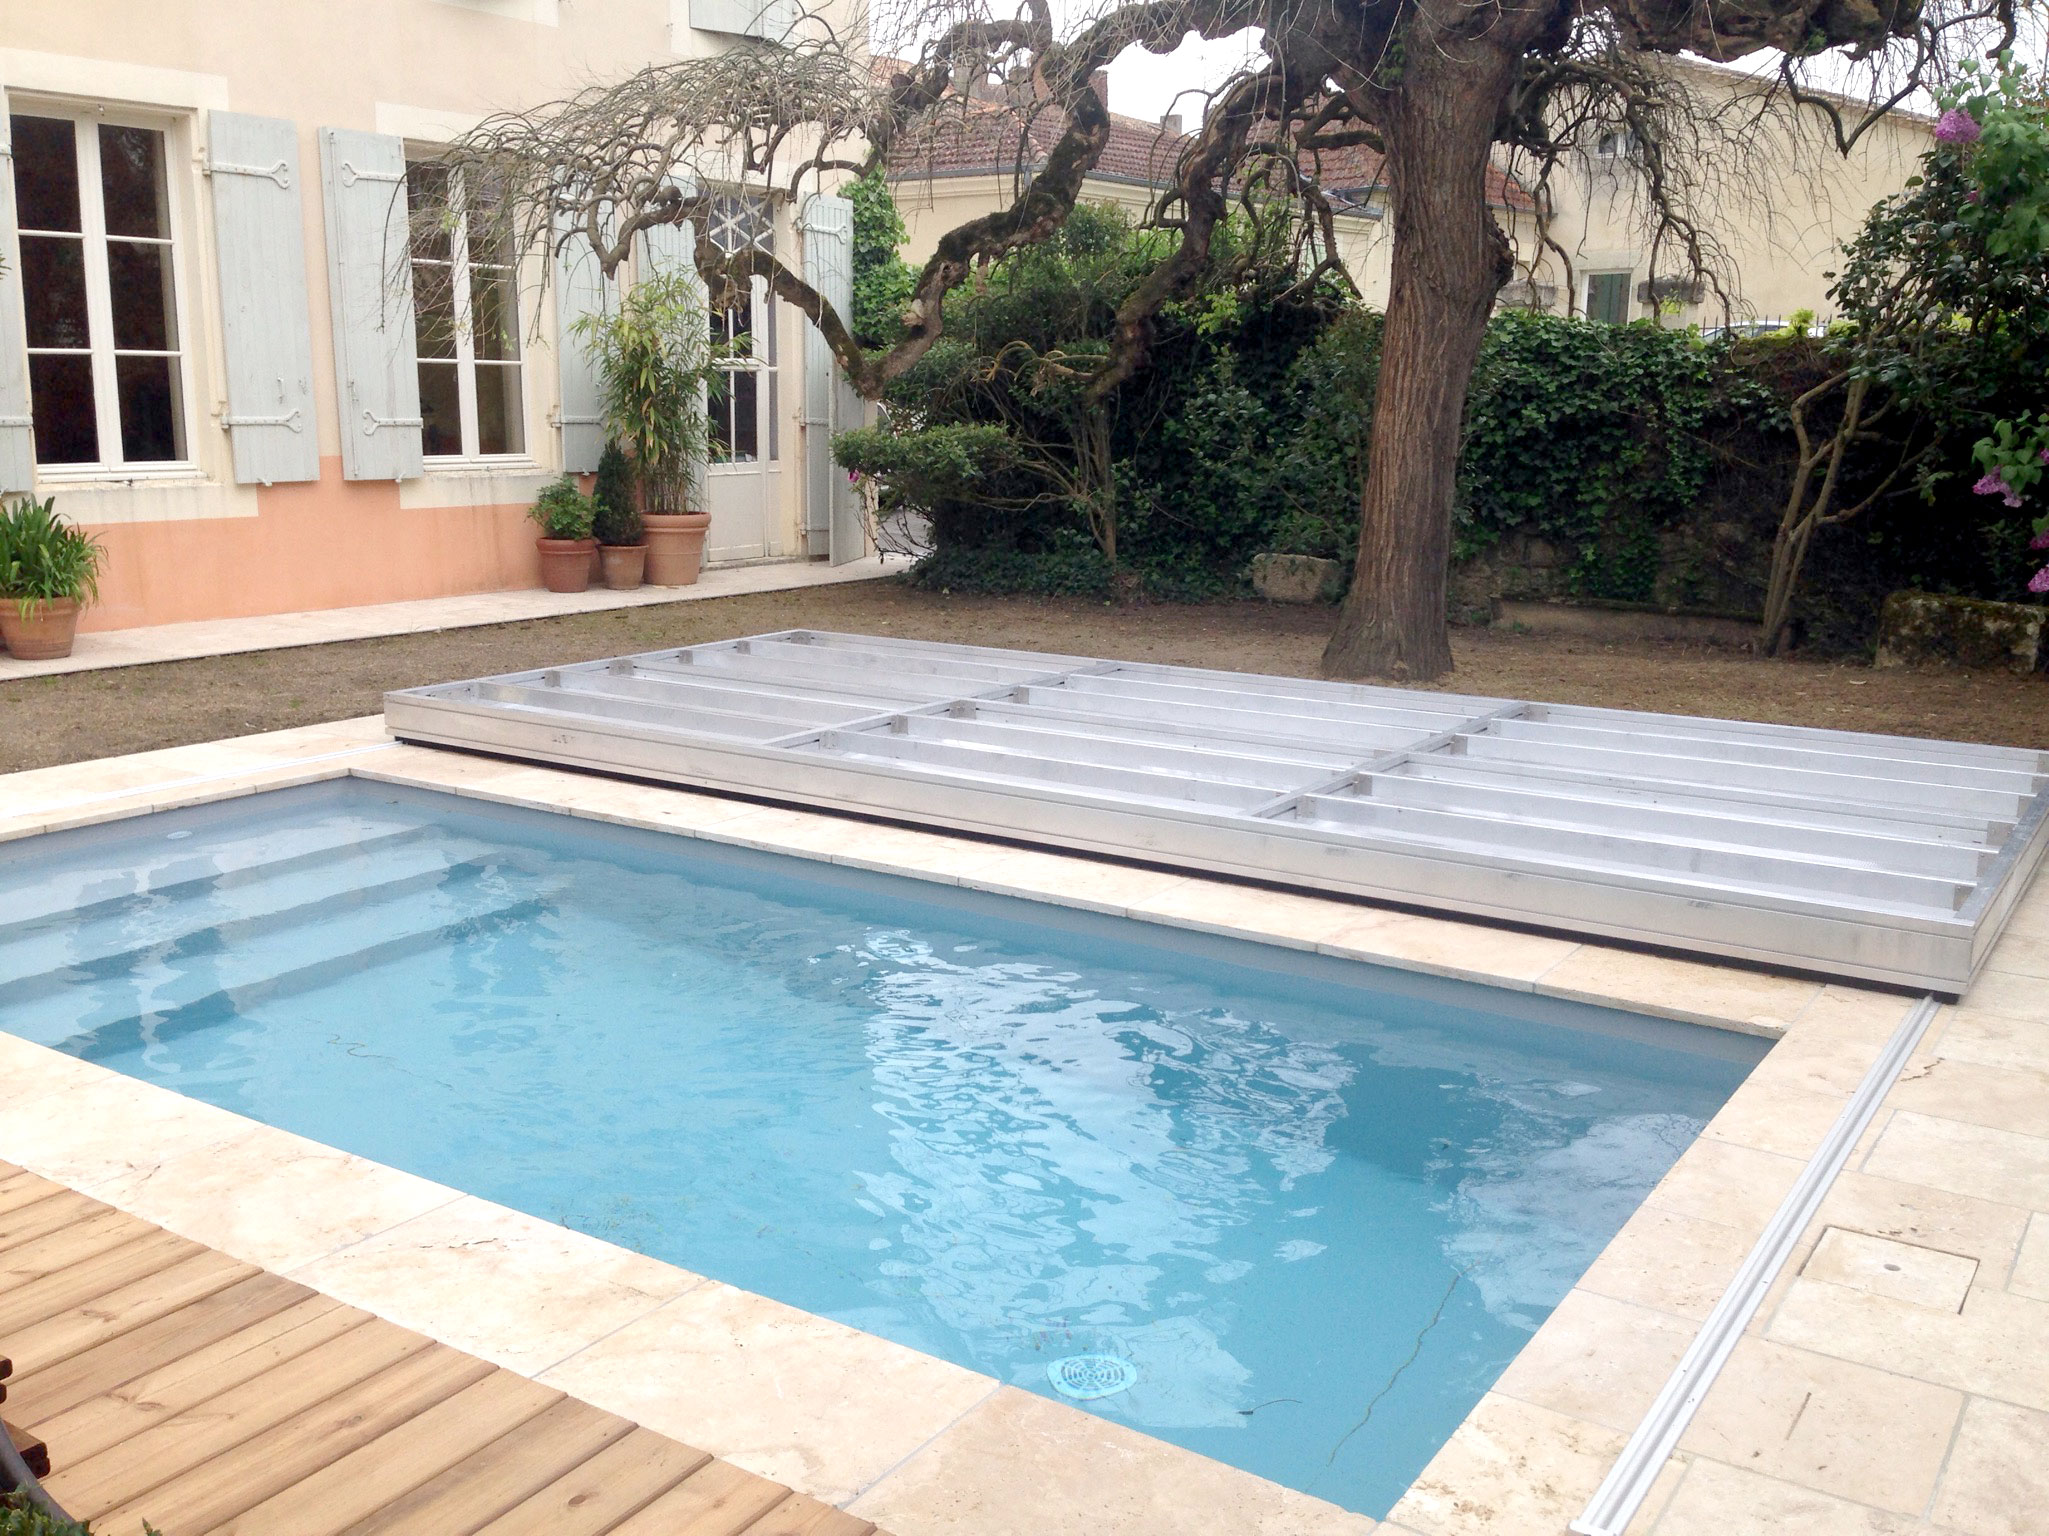 couvrir une piscine par une terrasse une installation en aquitaine. Black Bedroom Furniture Sets. Home Design Ideas